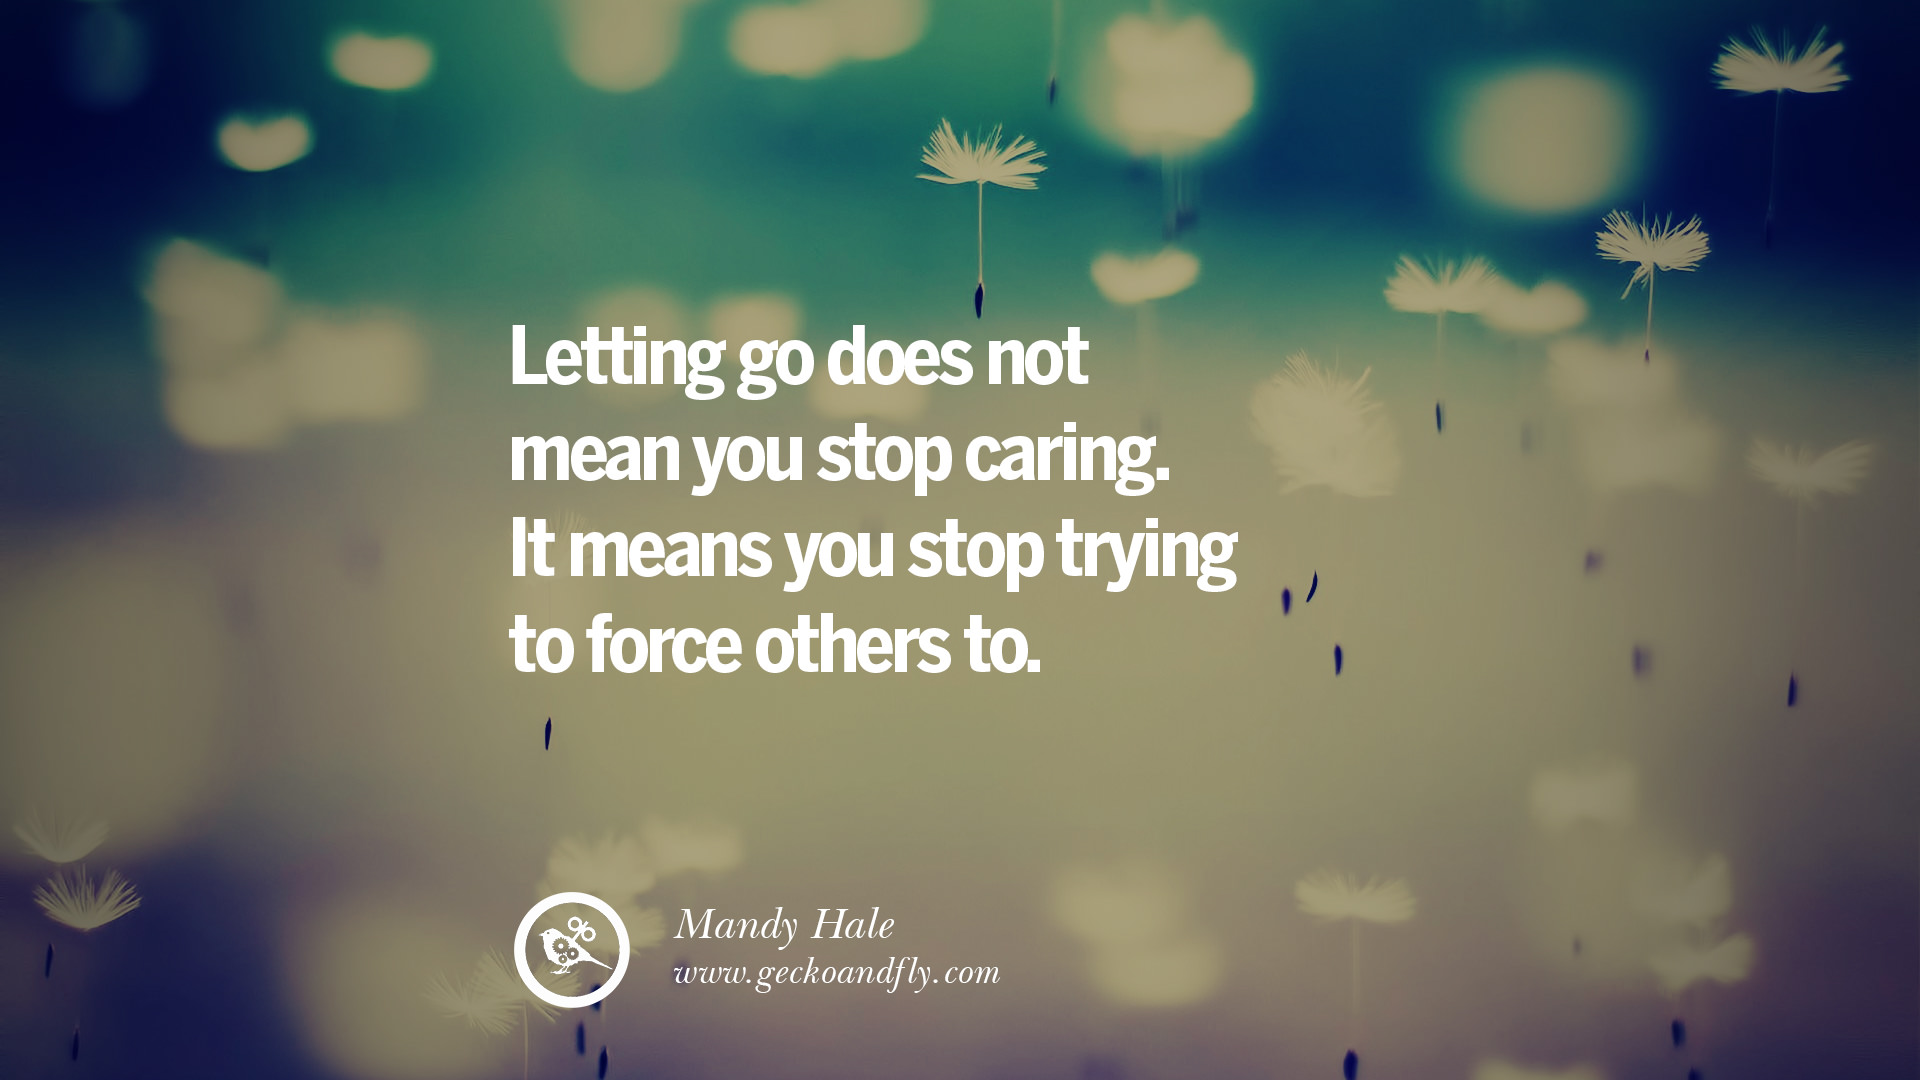 Quotes About Moving On 50 Quotes About Moving On And Letting Go Of Relationship And Love